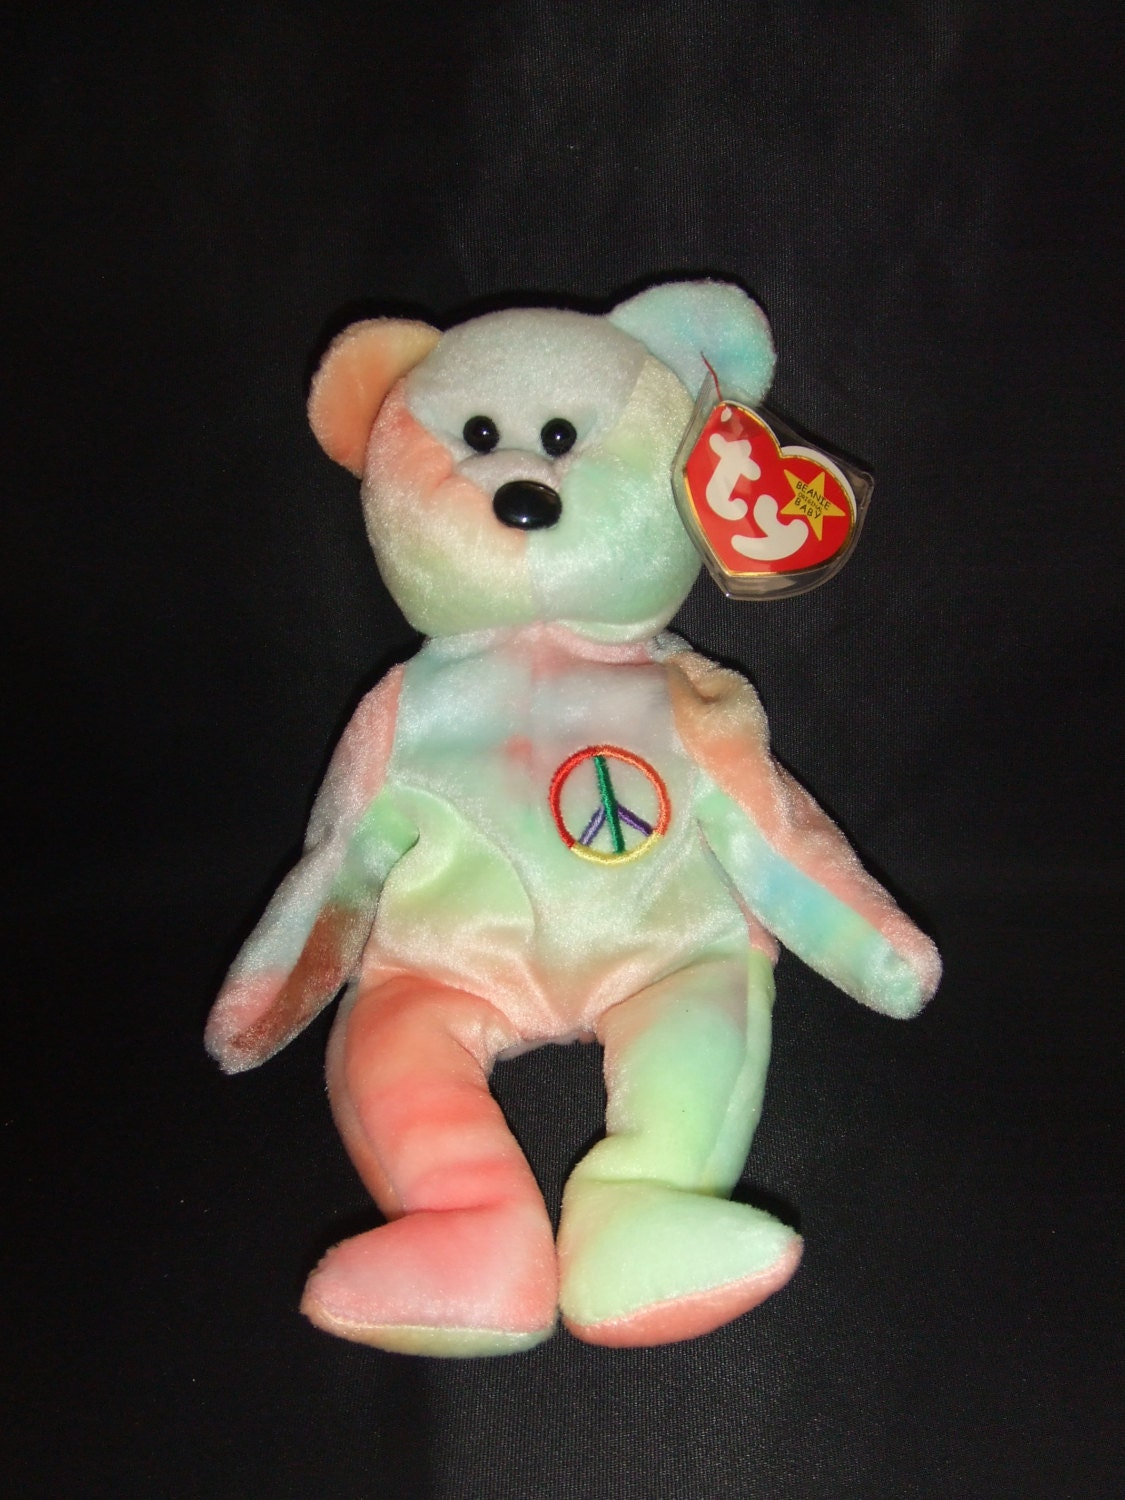 peace bear beanie babies collection original retired. Black Bedroom Furniture Sets. Home Design Ideas